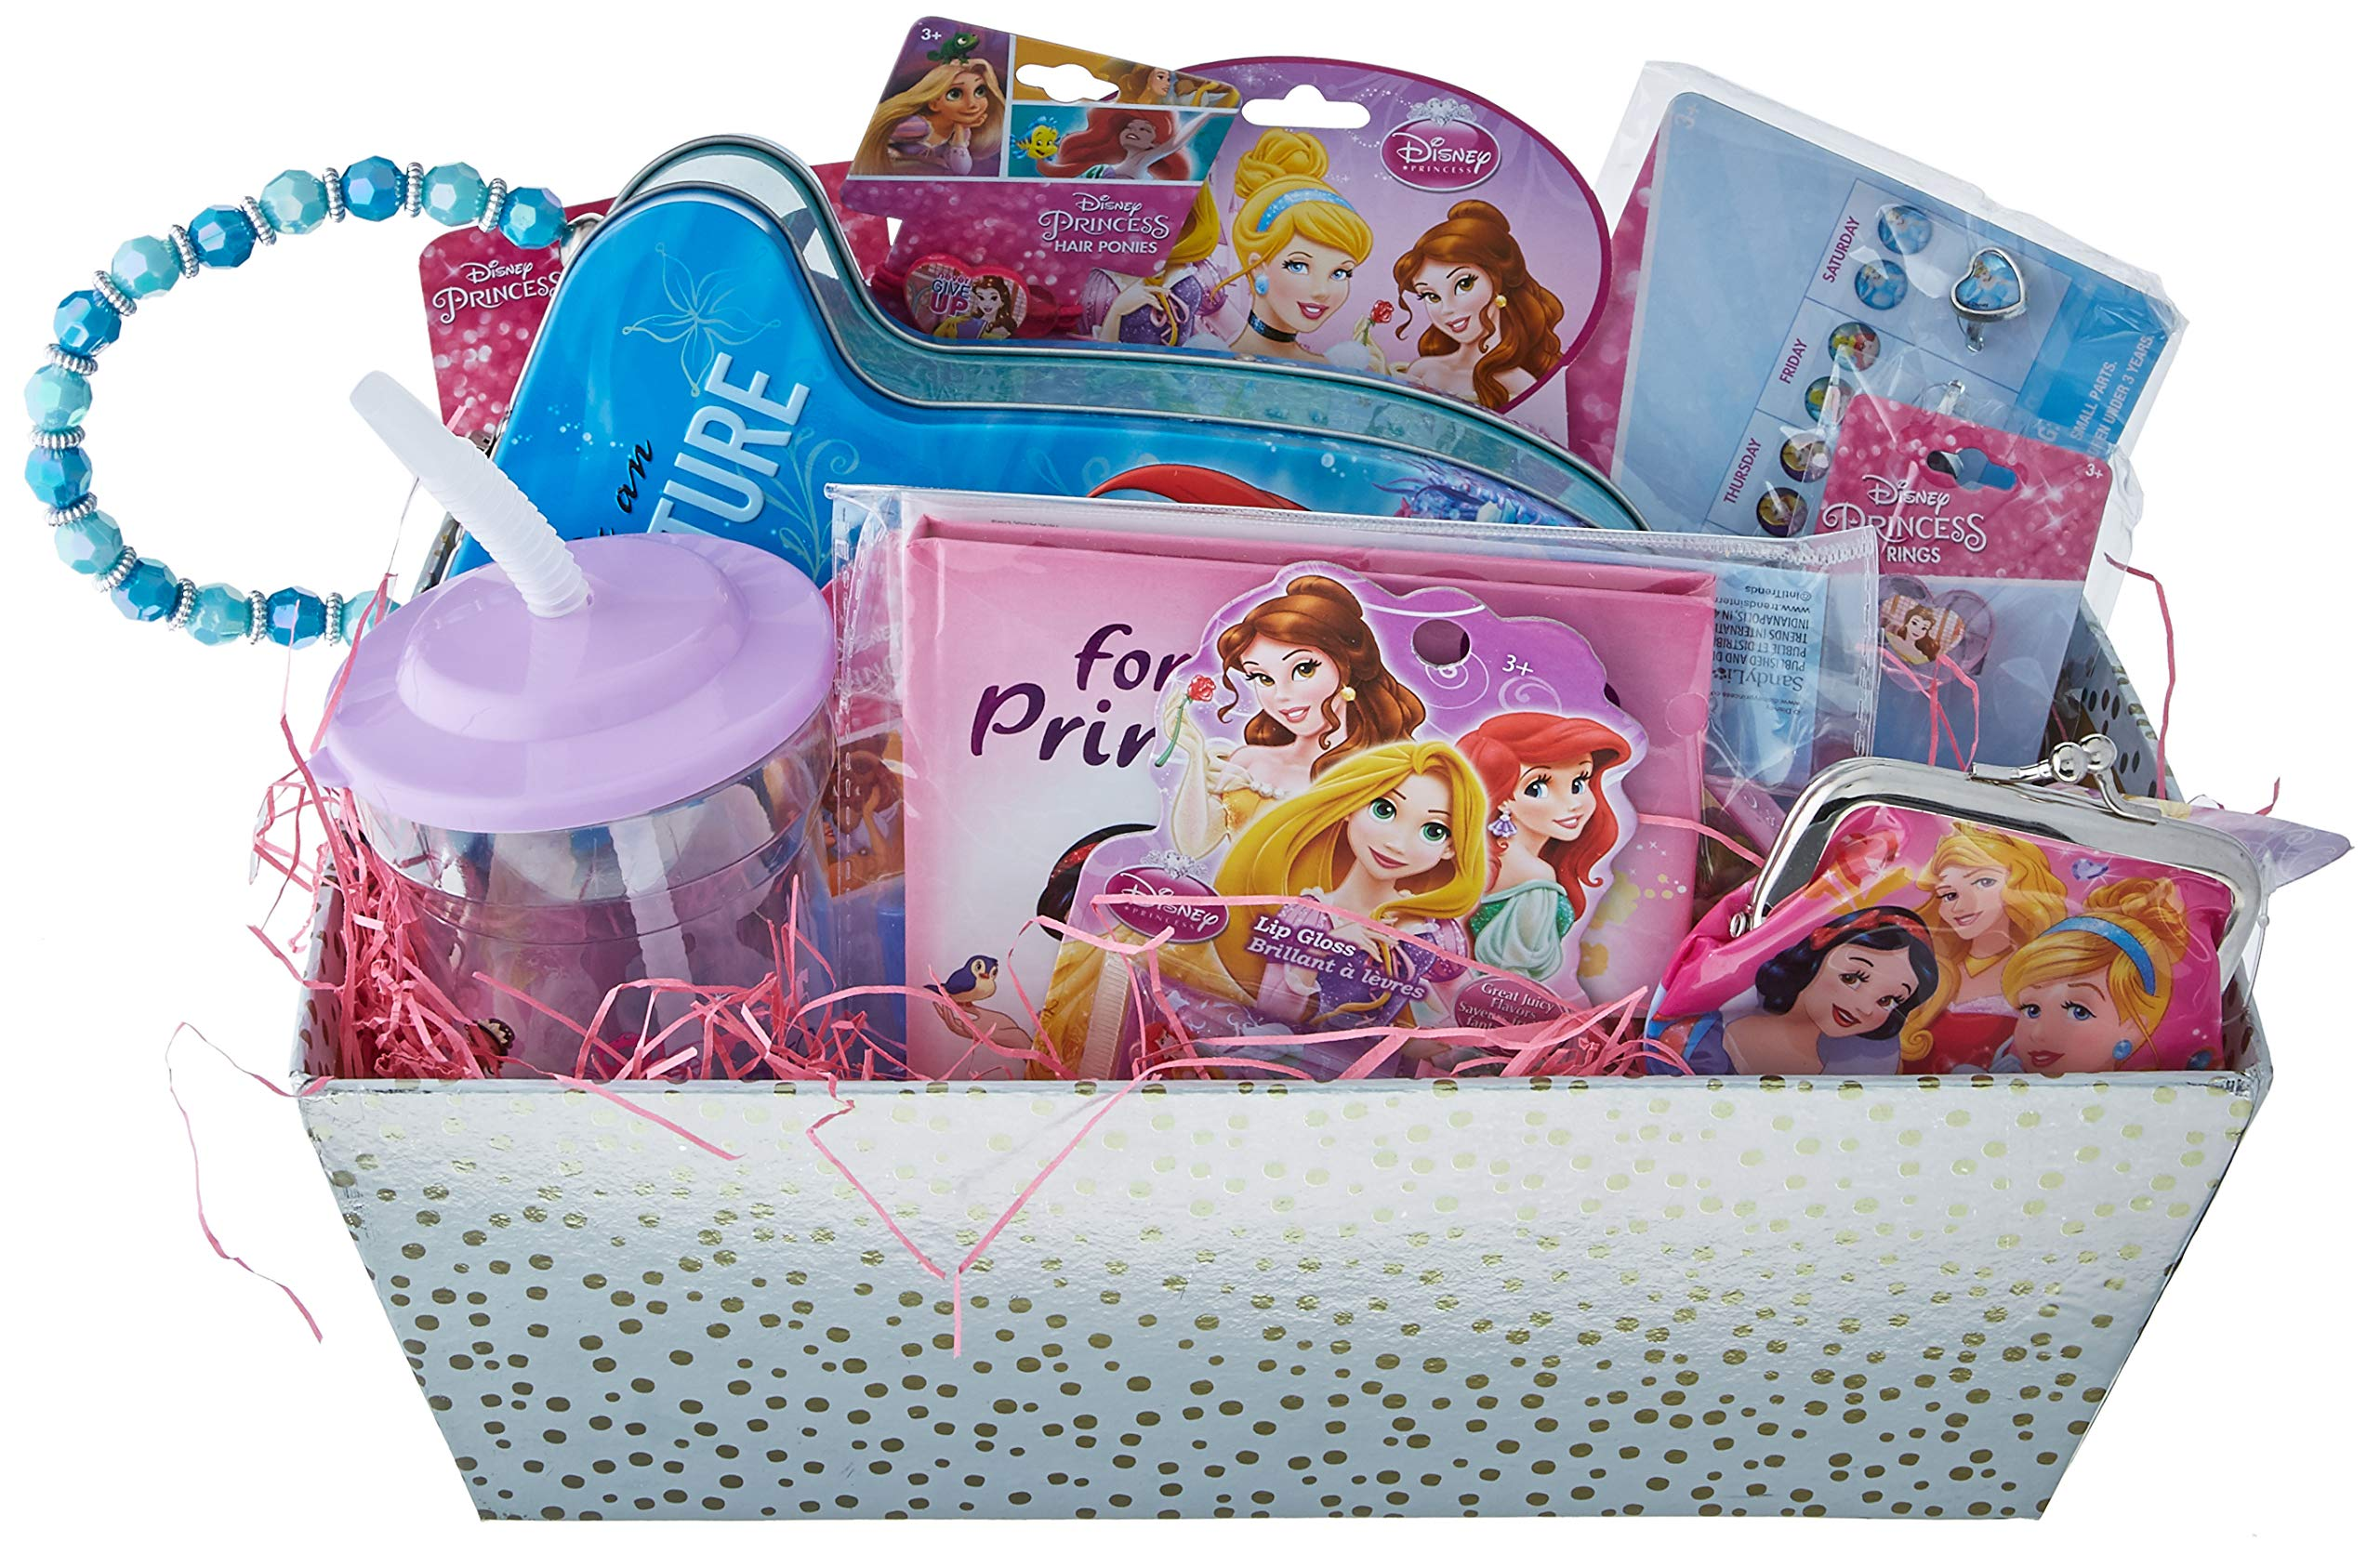 Easter Gift Baskets u2013 Disney Princess Themed Holiday Gifts Idea for Girls Wish her During Birthday  sc 1 st  Amazon.com & Gift Baskets for Children: Amazon.com